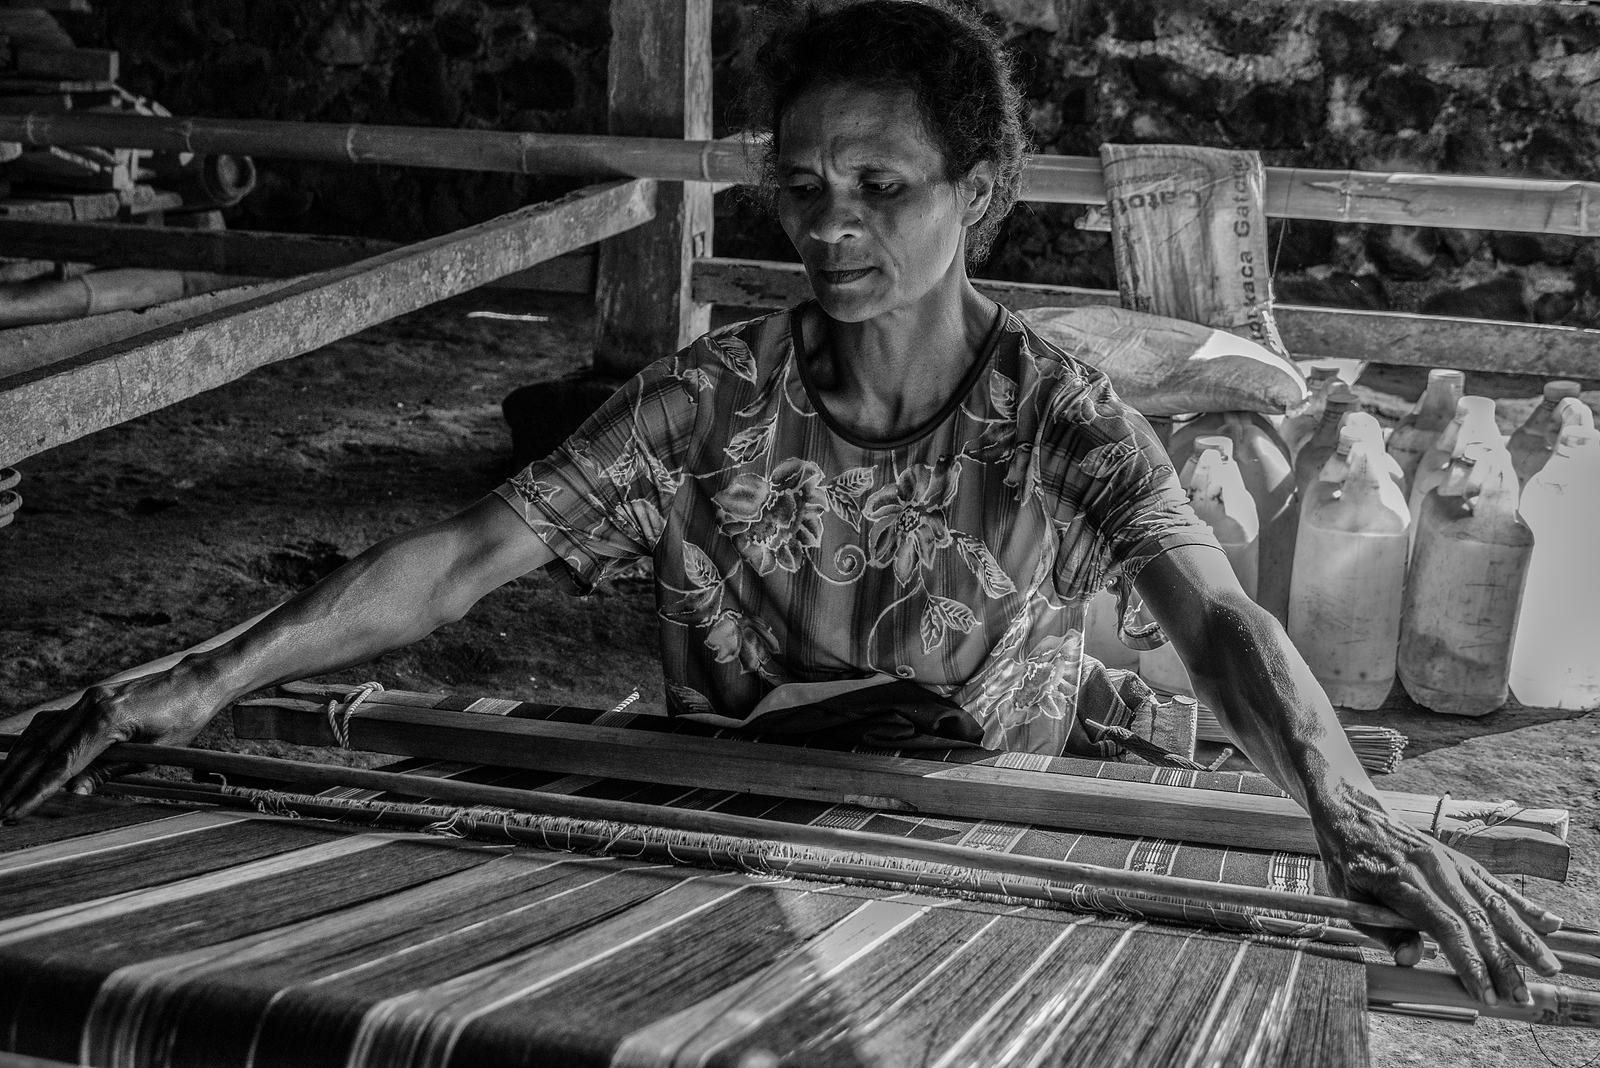 Luba Village Woman Weaving an Ikat